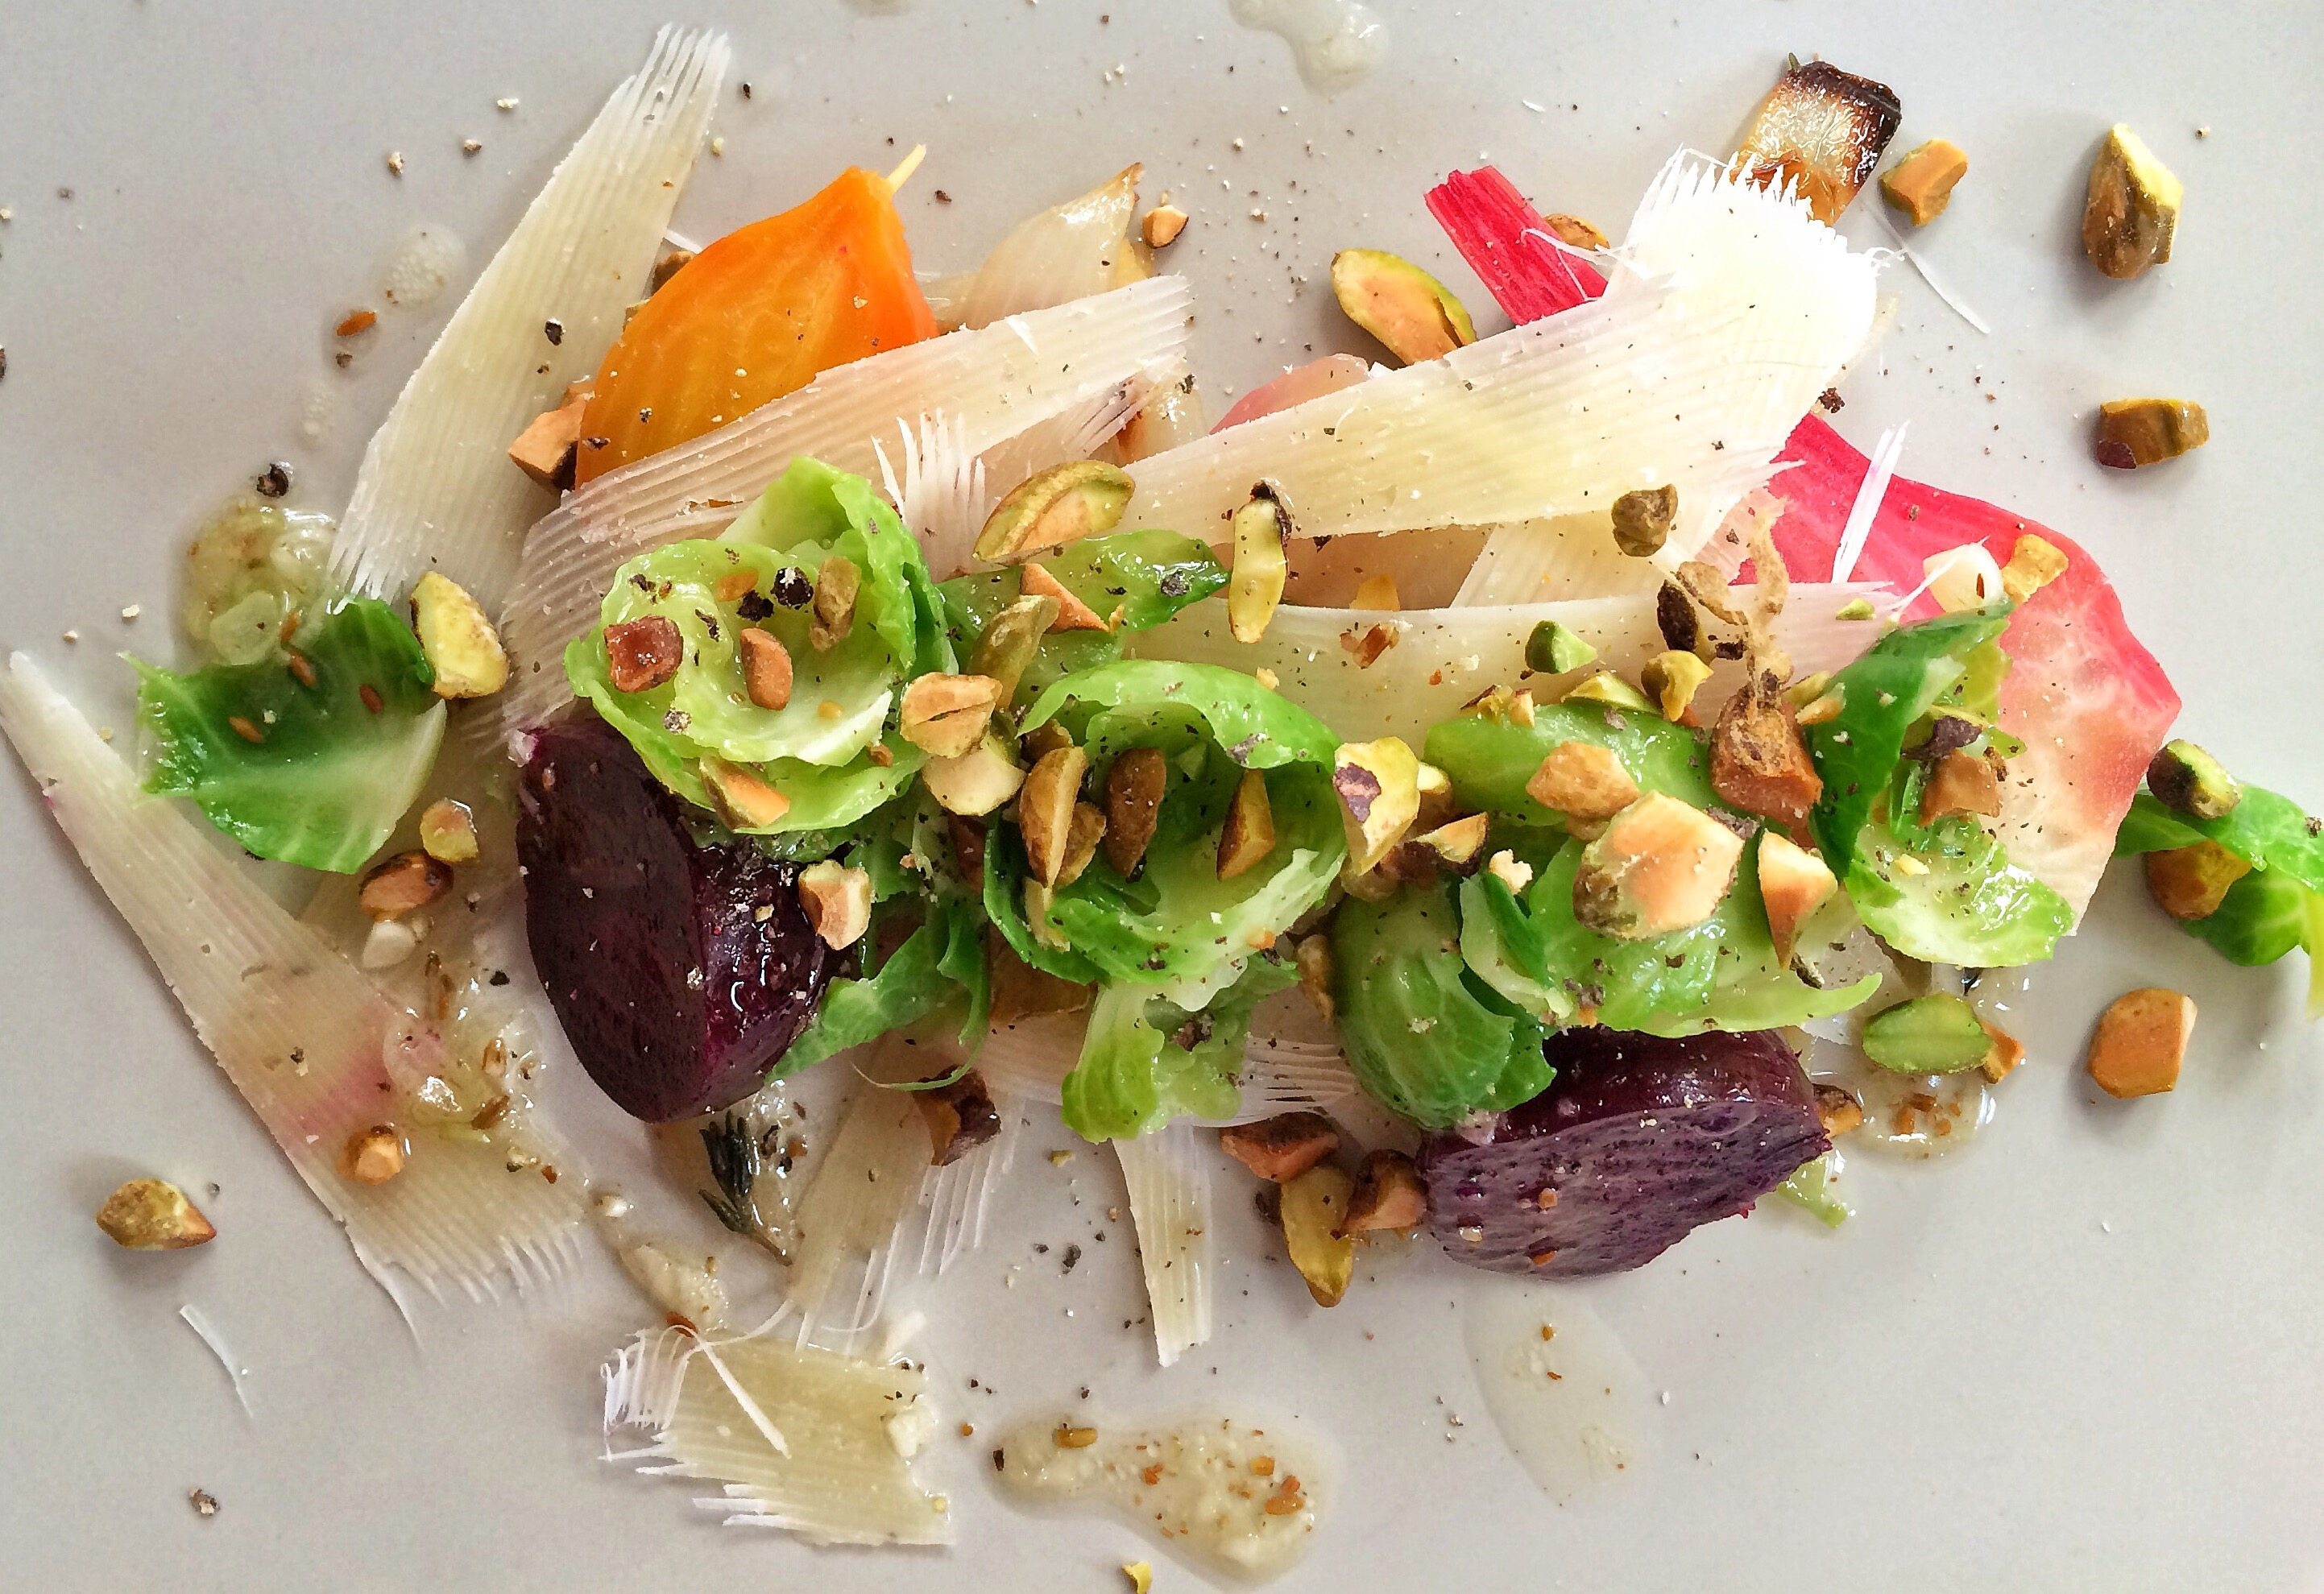 Winter Salad of Roasted Beets and Onions, Brussel Sprouts and Dry Jack, Toasted Pistachio Vinaigrette